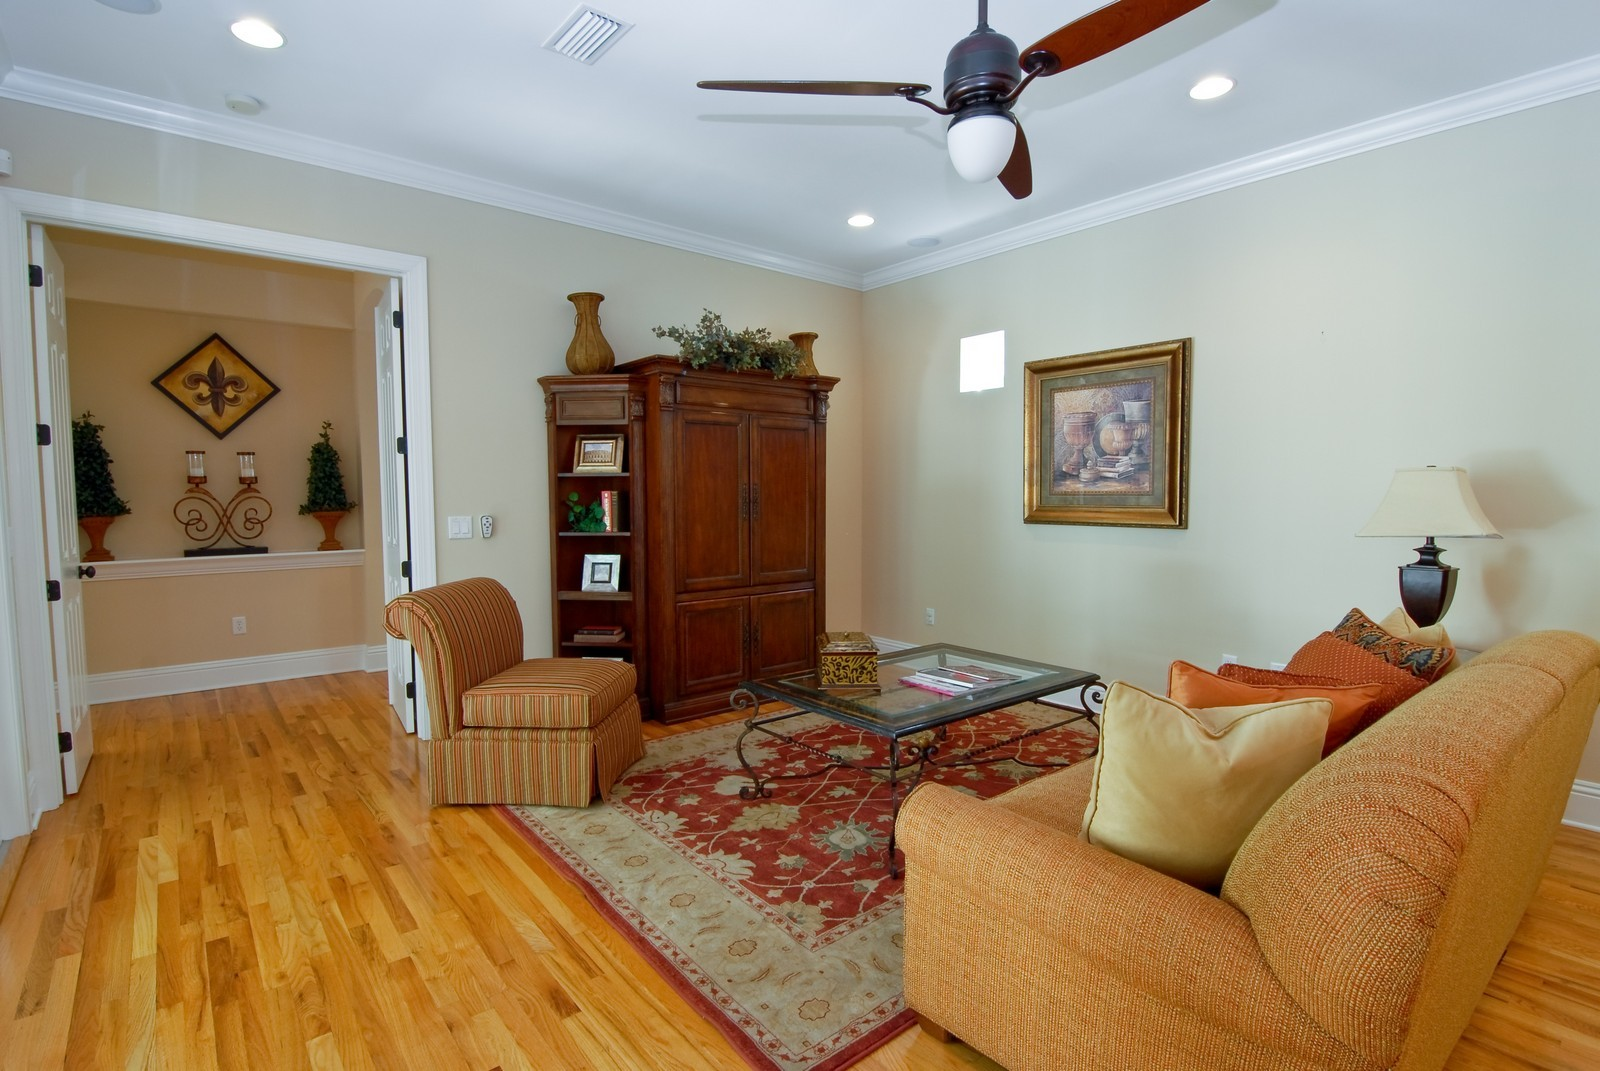 Real Estate Photography - 3107 Fountain Blvd, Tampa, FL, 33609 - Family Room